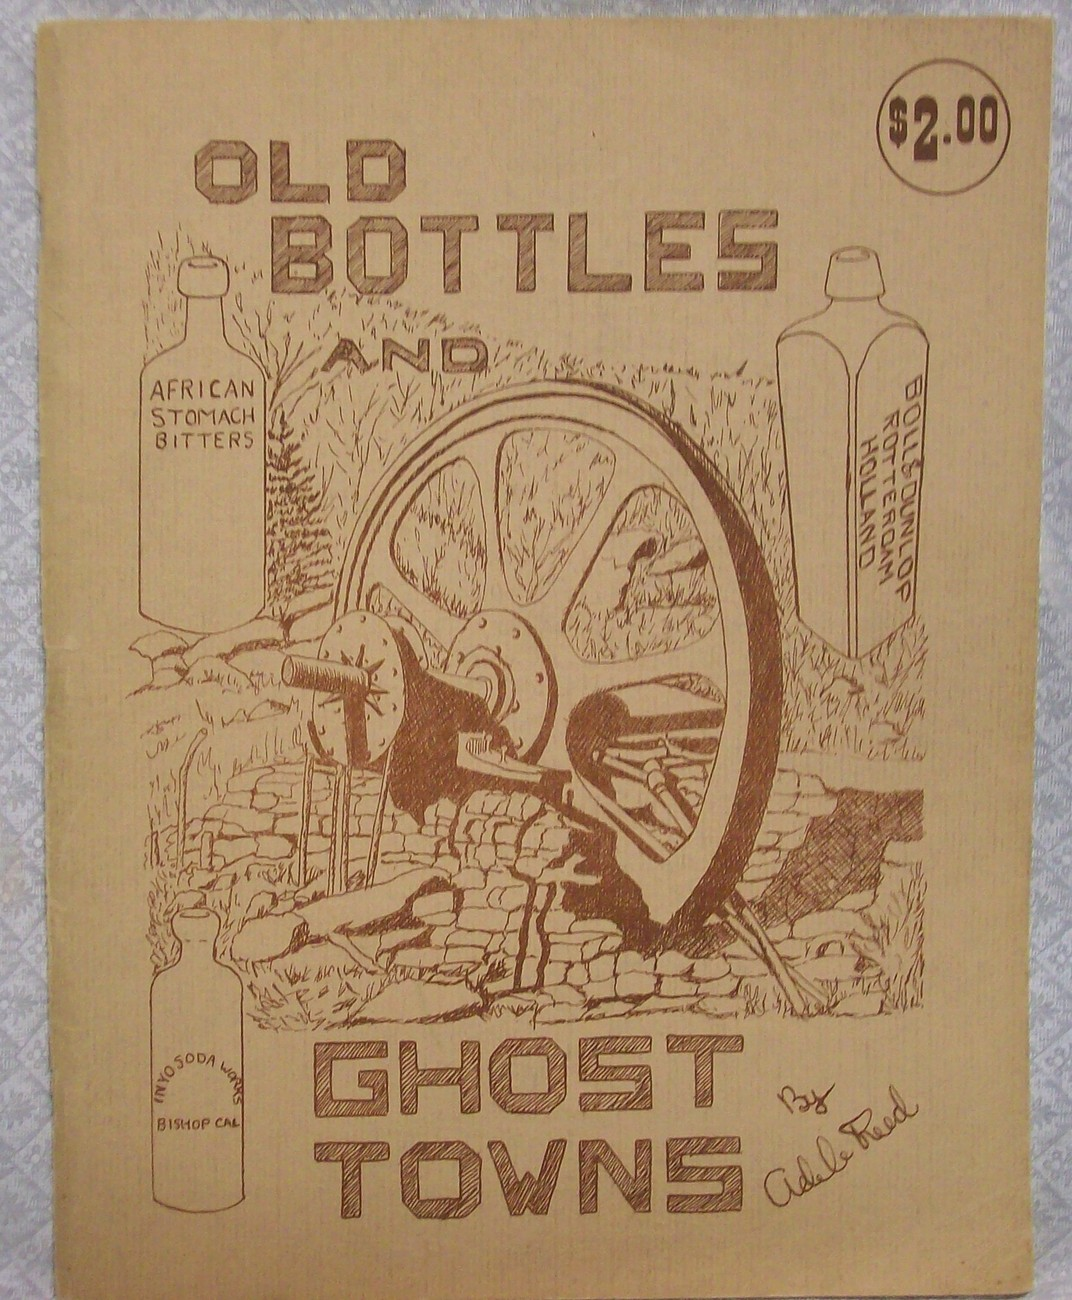 Old Bottles and Ghost towns by Reed Adele signed